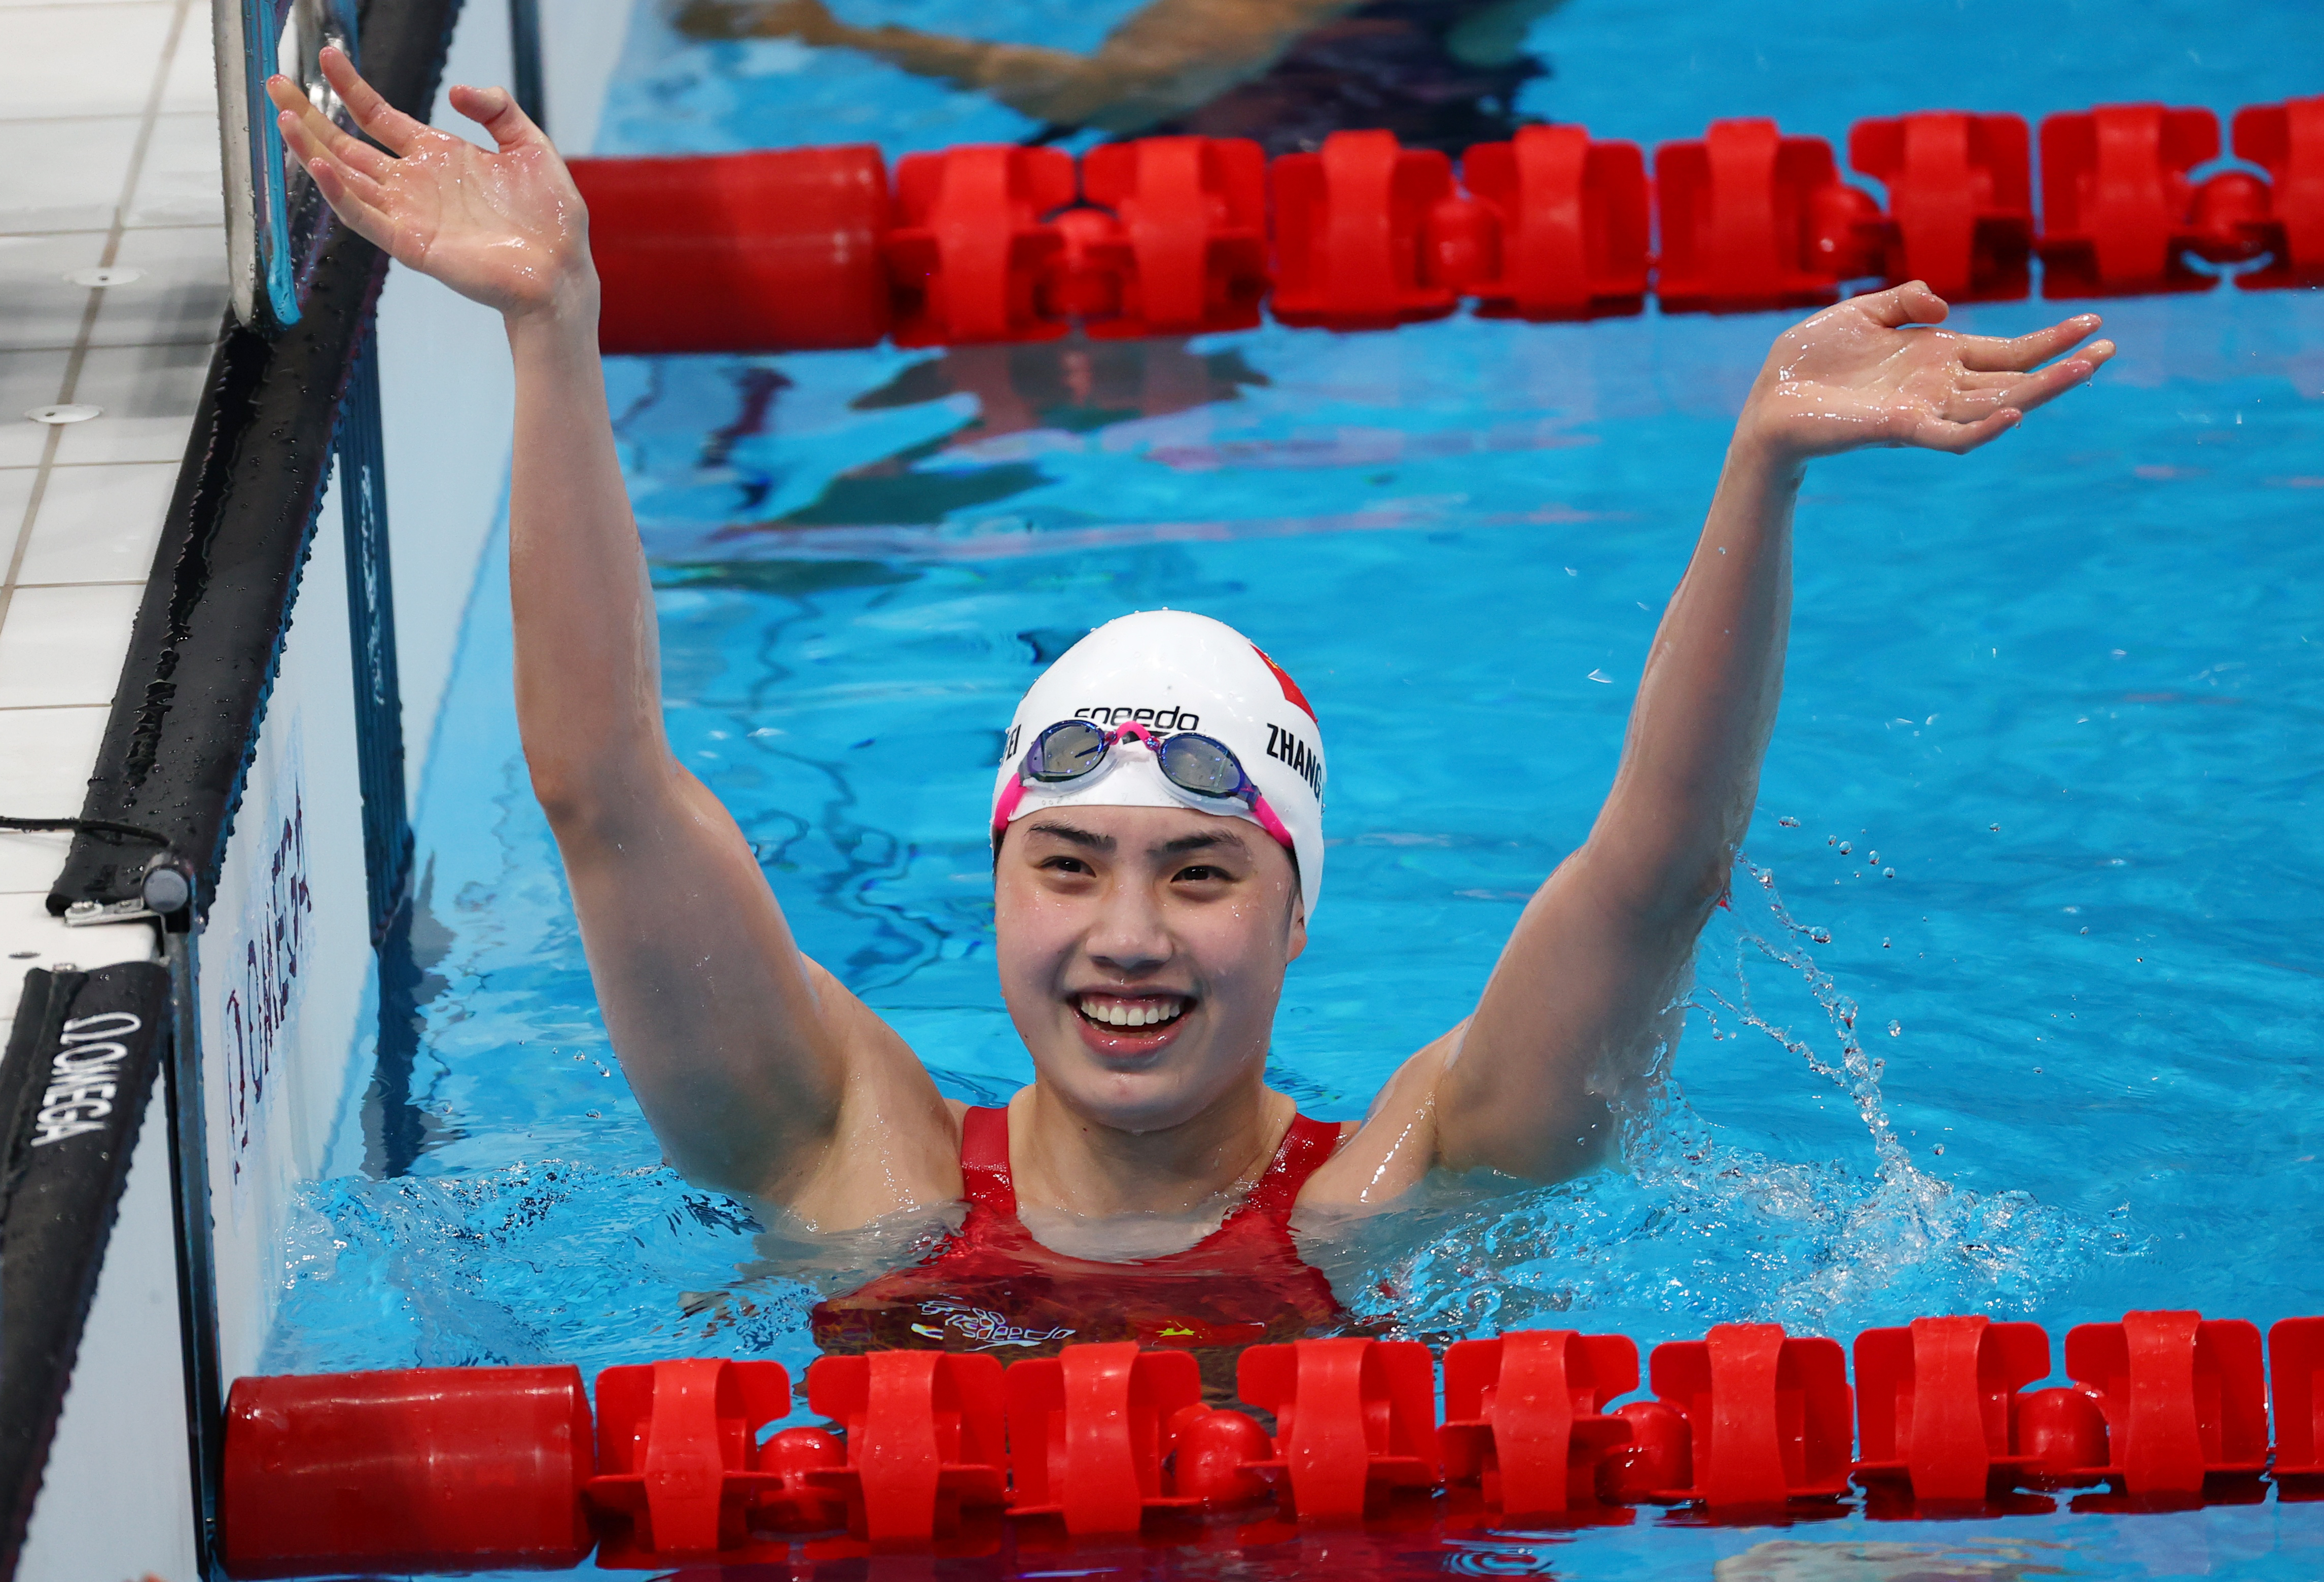 Tokyo 2020 Olympics - Swimming - Women's 200m Butterfly - Final - Tokyo Aquatics Centre - Tokyo, Japan - July 29, 2021. Zhang Yufei of China reacts after setting a new Olympic record REUTERS/Lisi Niesner